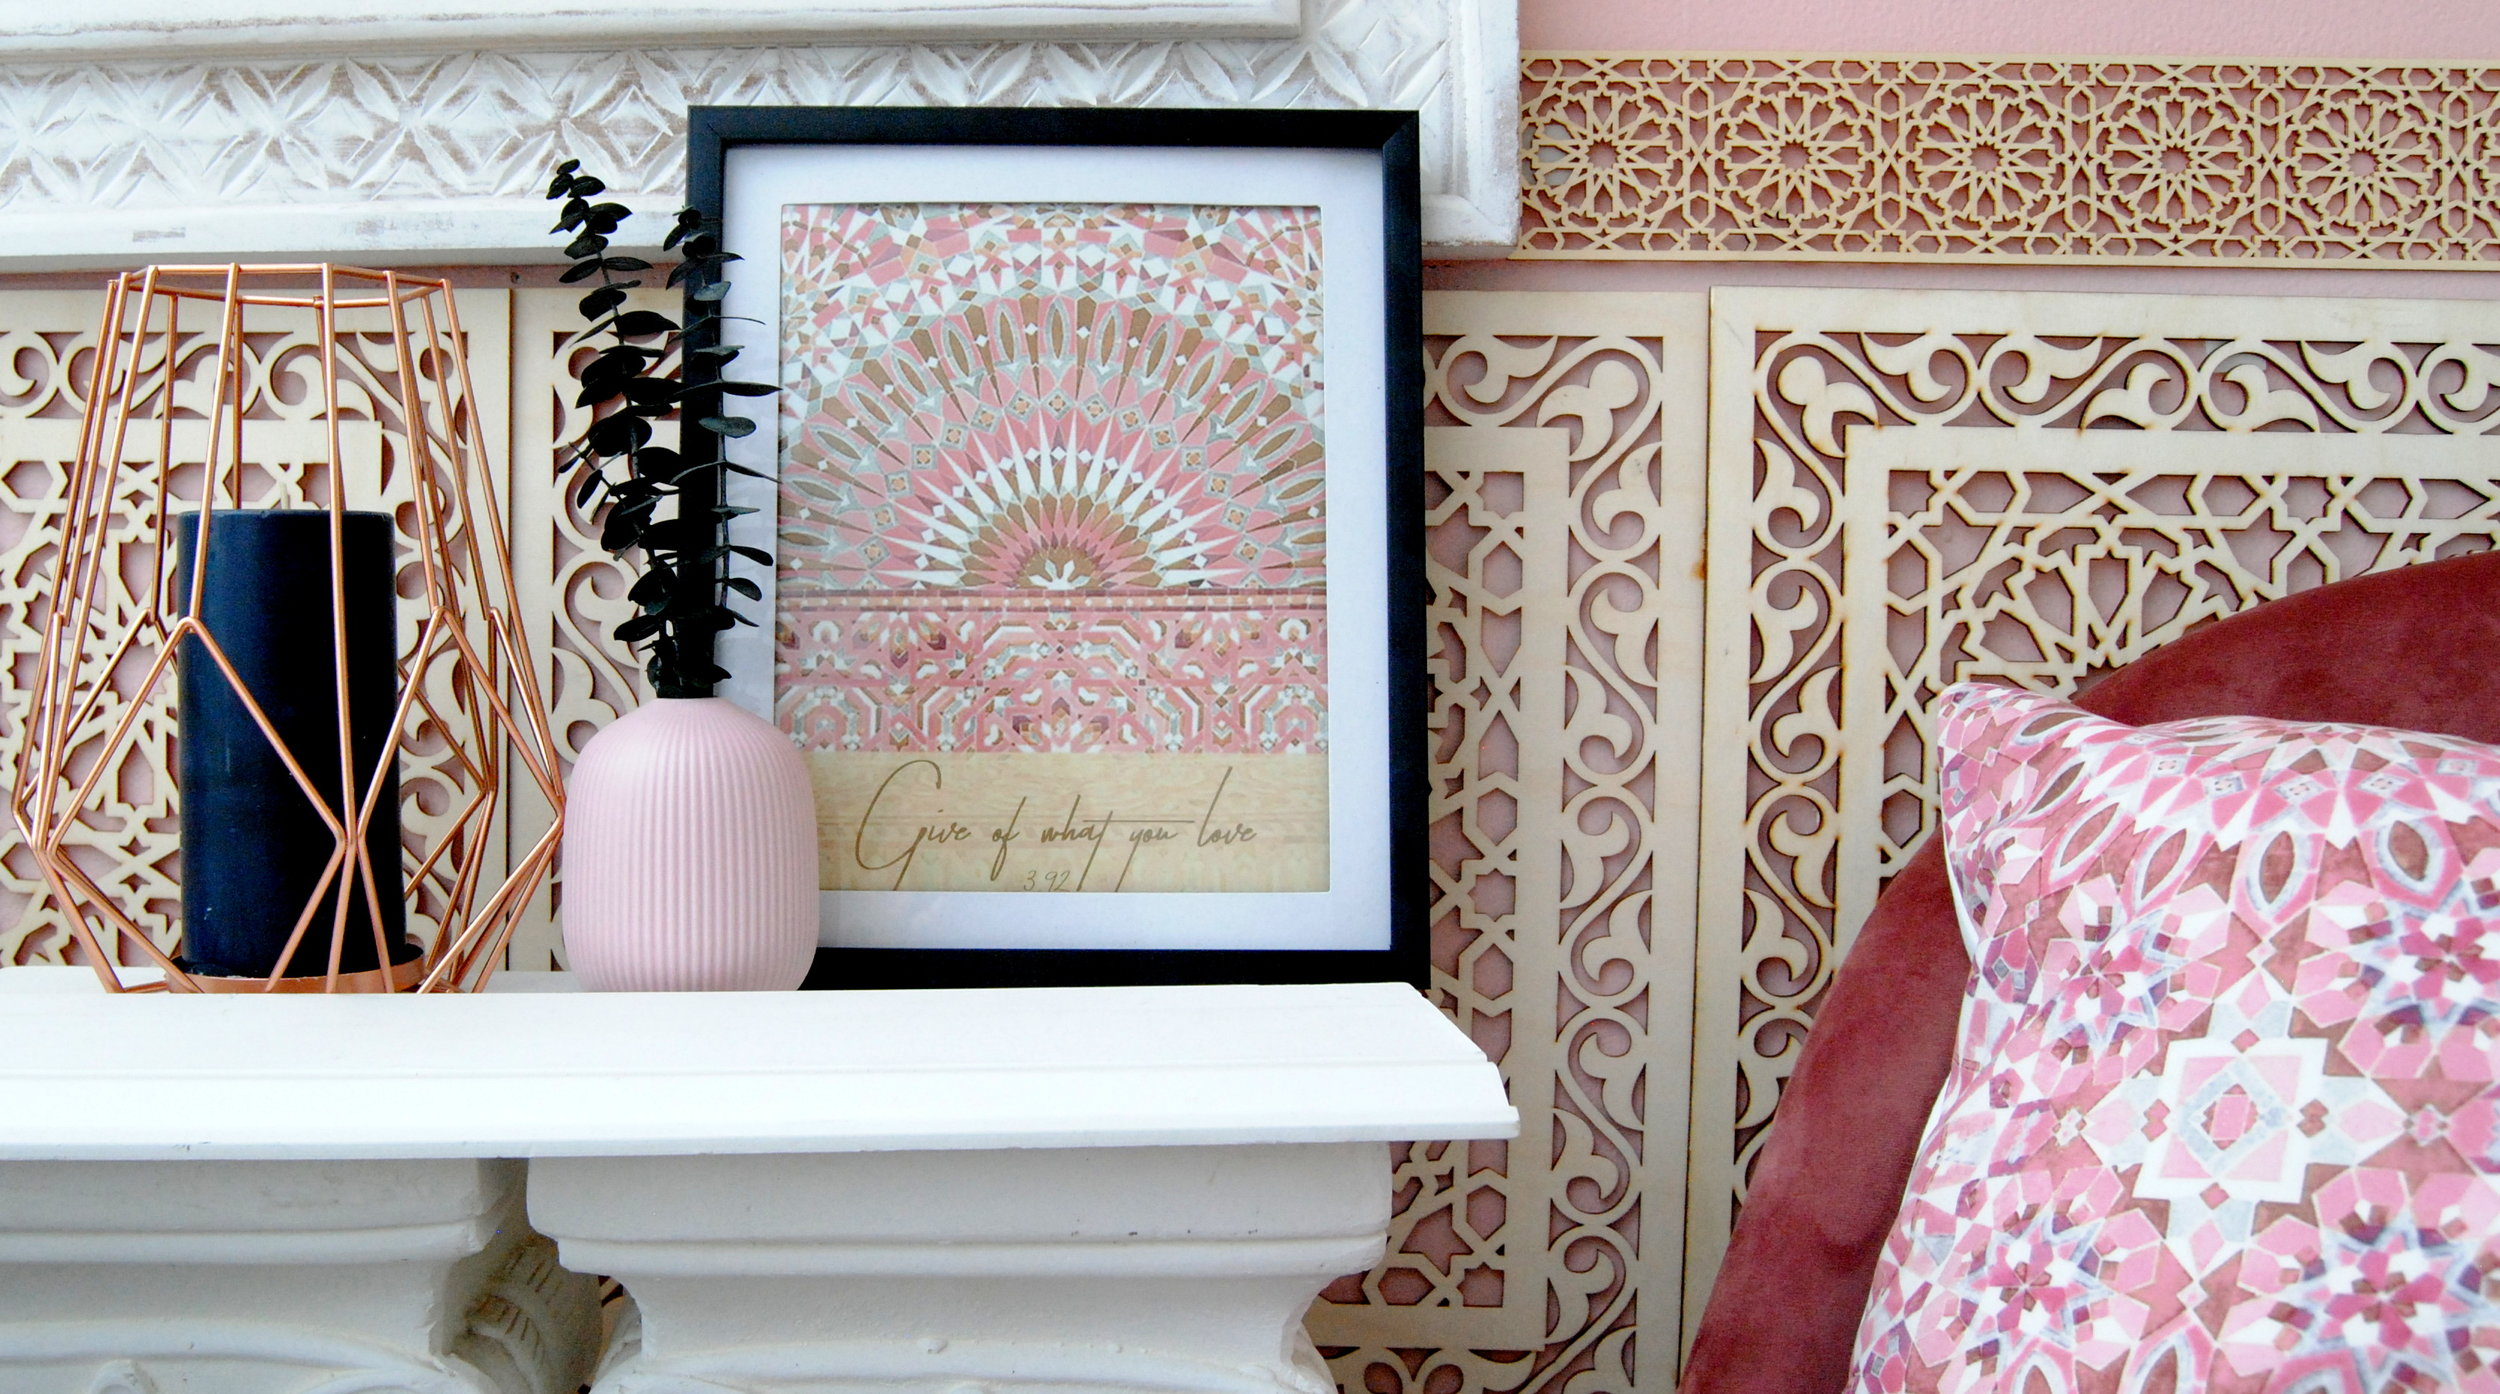 ARABESQUE WALL ART MOROCCAN WALL ART QURANIC WALL ART ISLAMIC DECOR